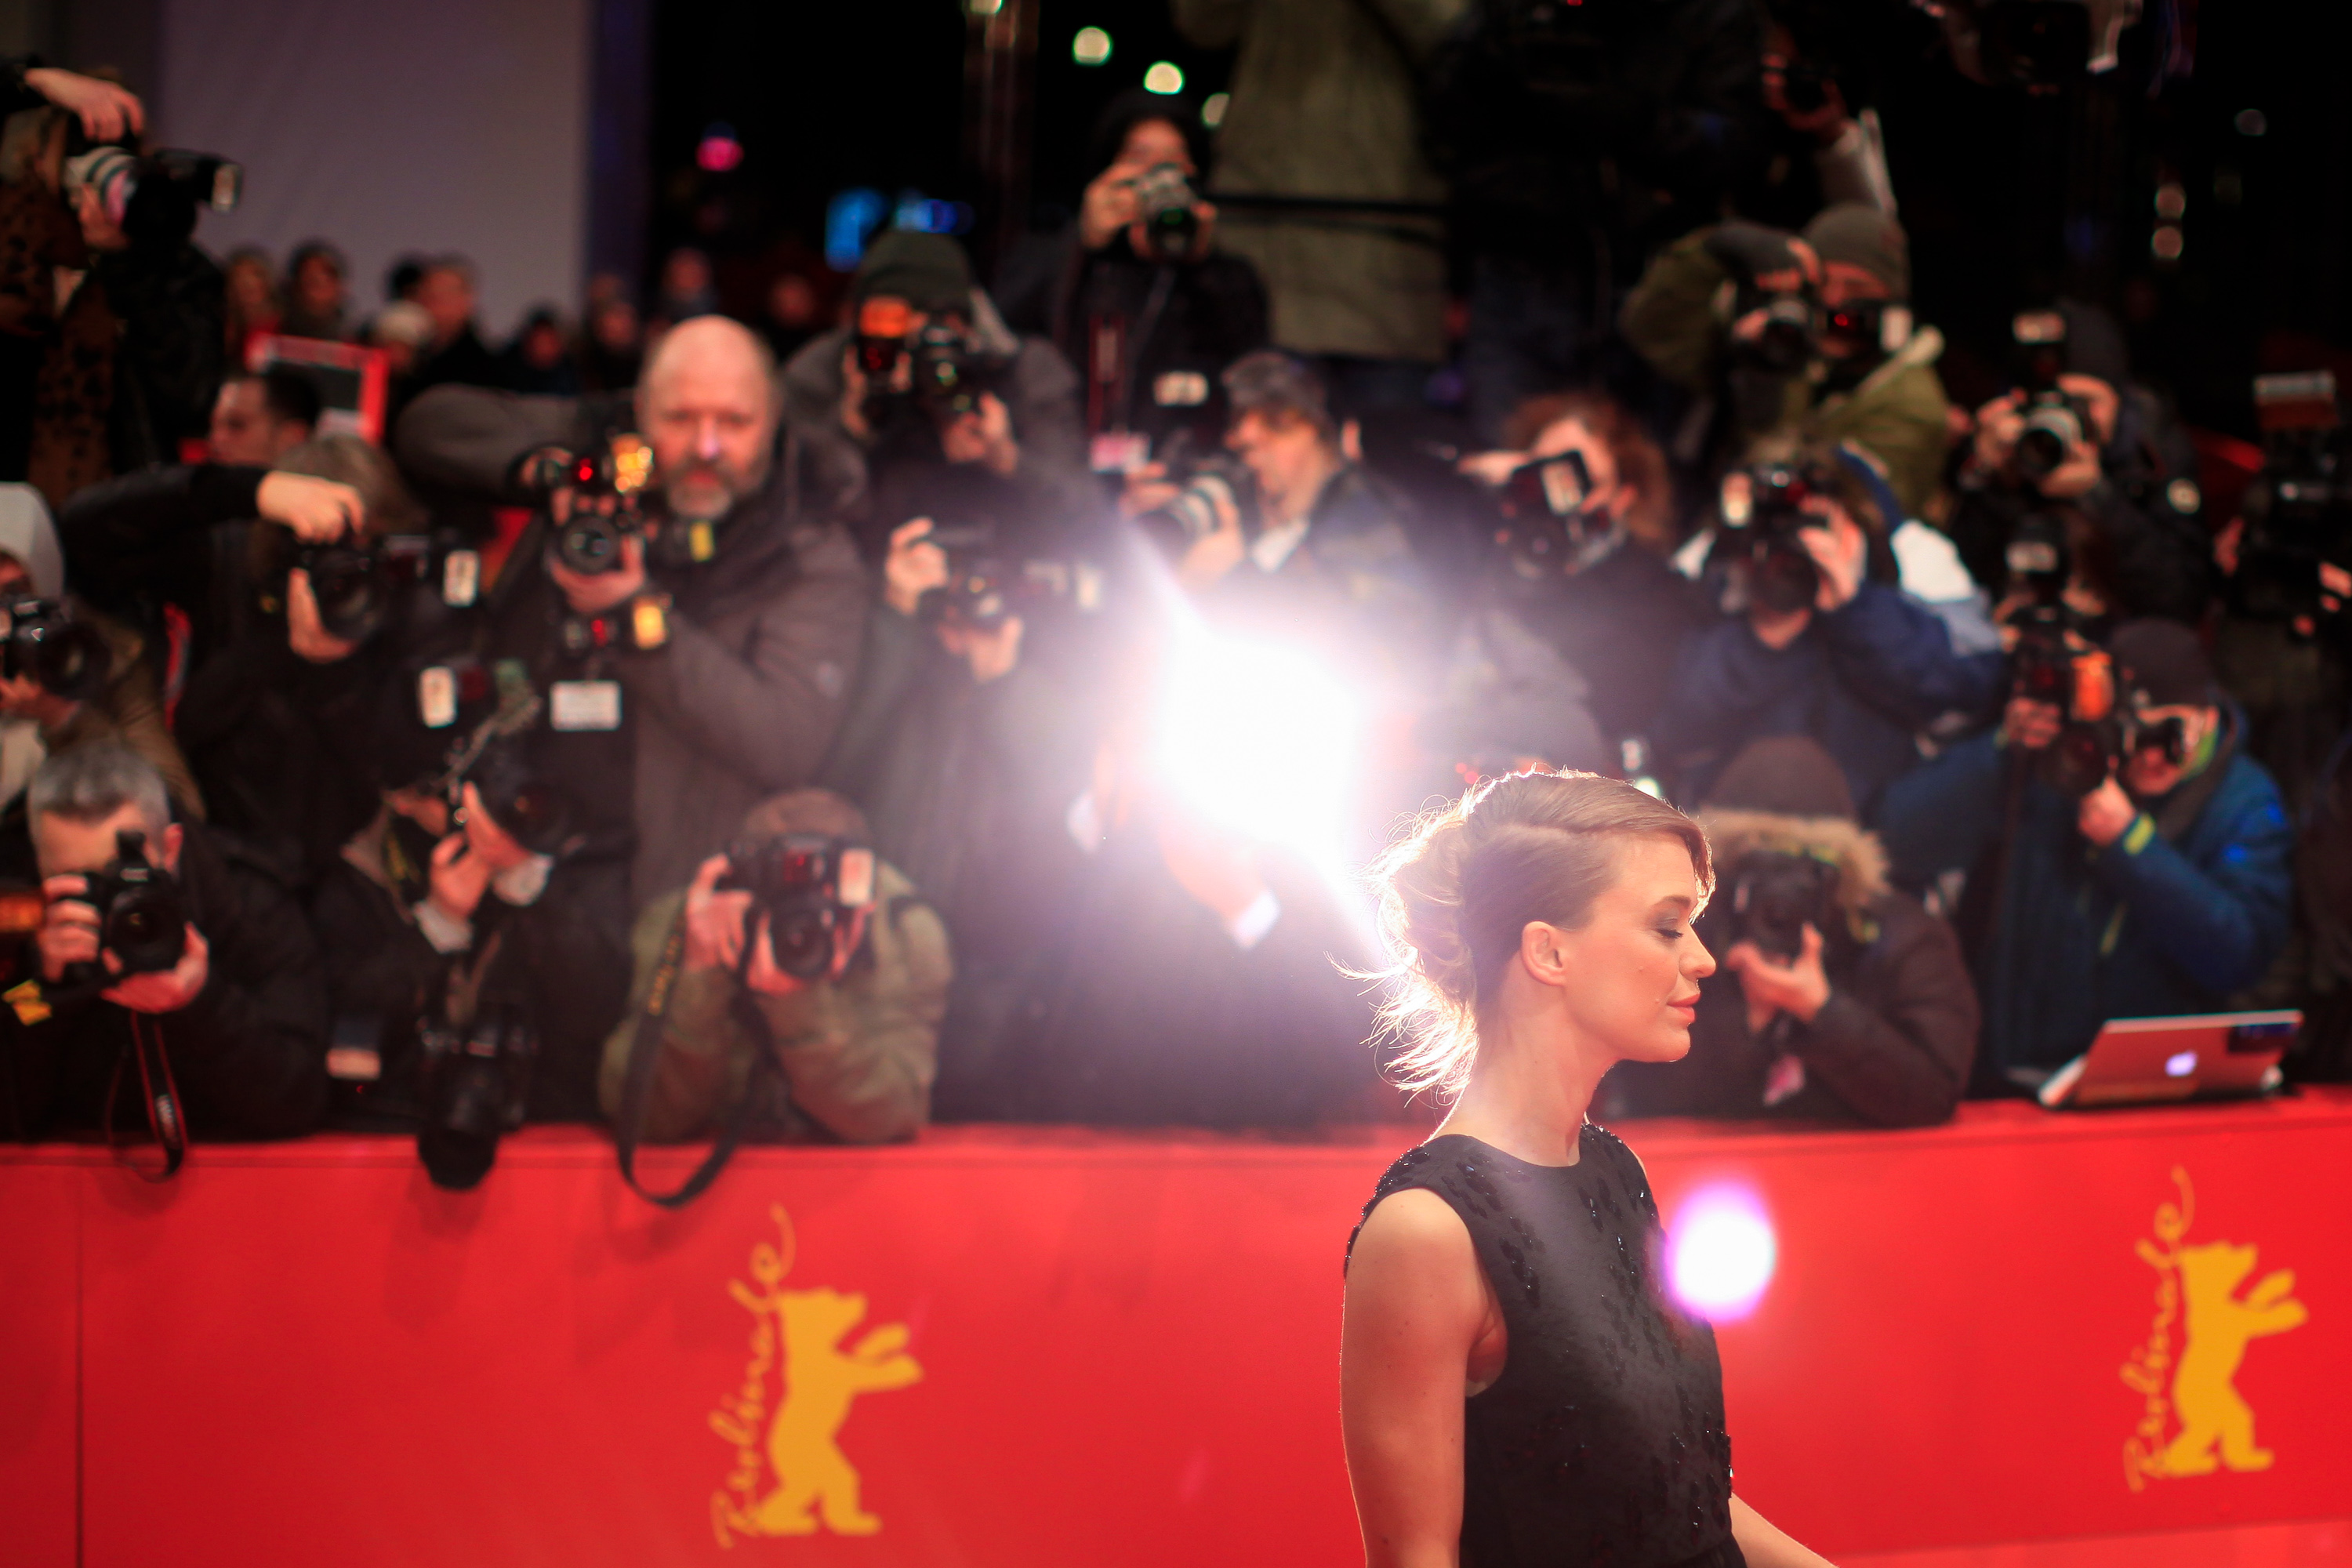 (150205) -- BERLIN, Feb. 5, 2015 () -- German Actress Heike Makatsch poses for photos on the red carpet prior to the opening